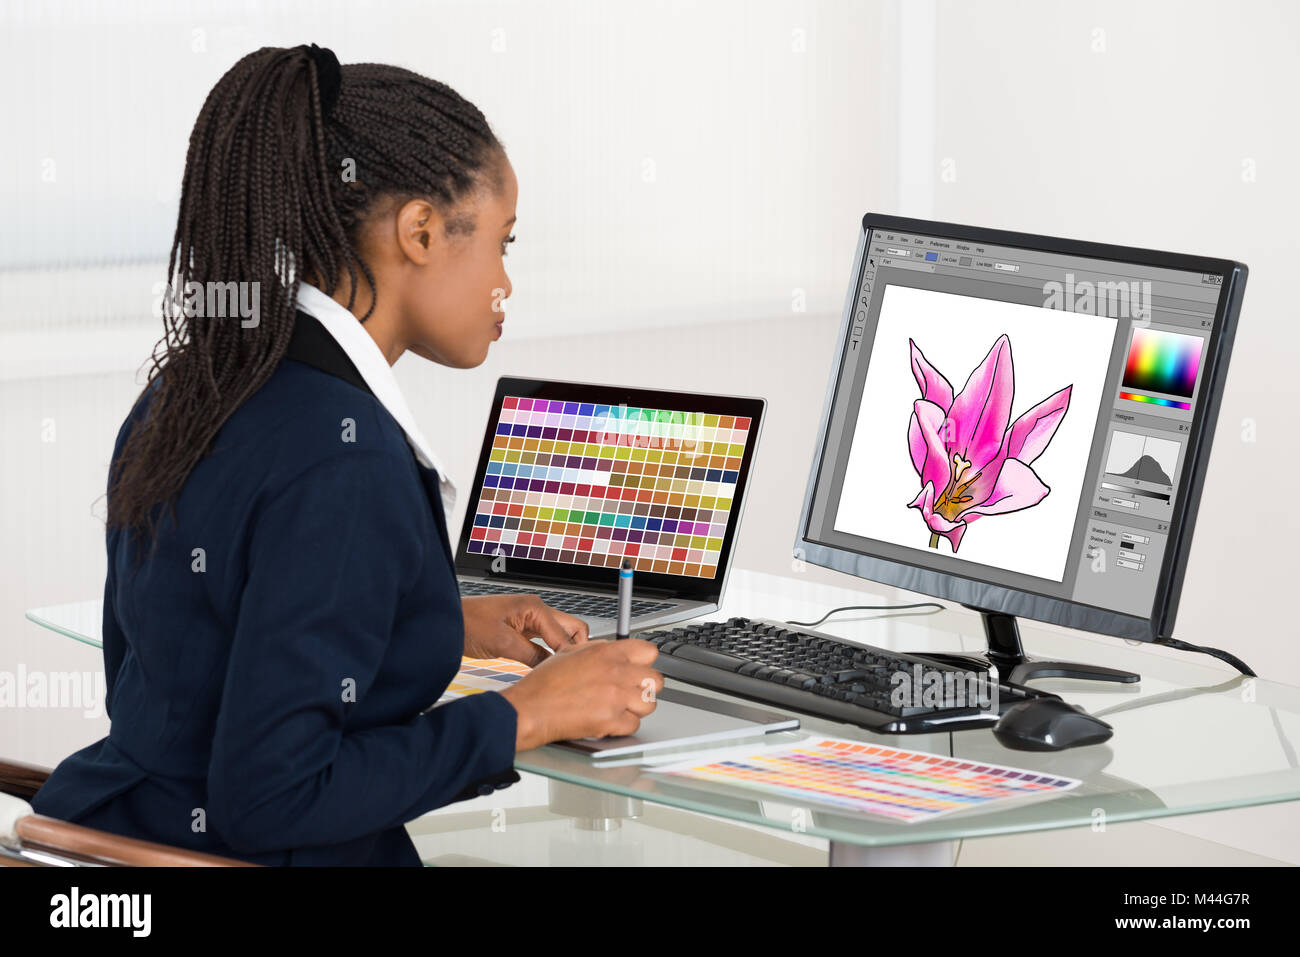 Female designer drawing flower on computer using graphic tablet at desk in office - Stock Image